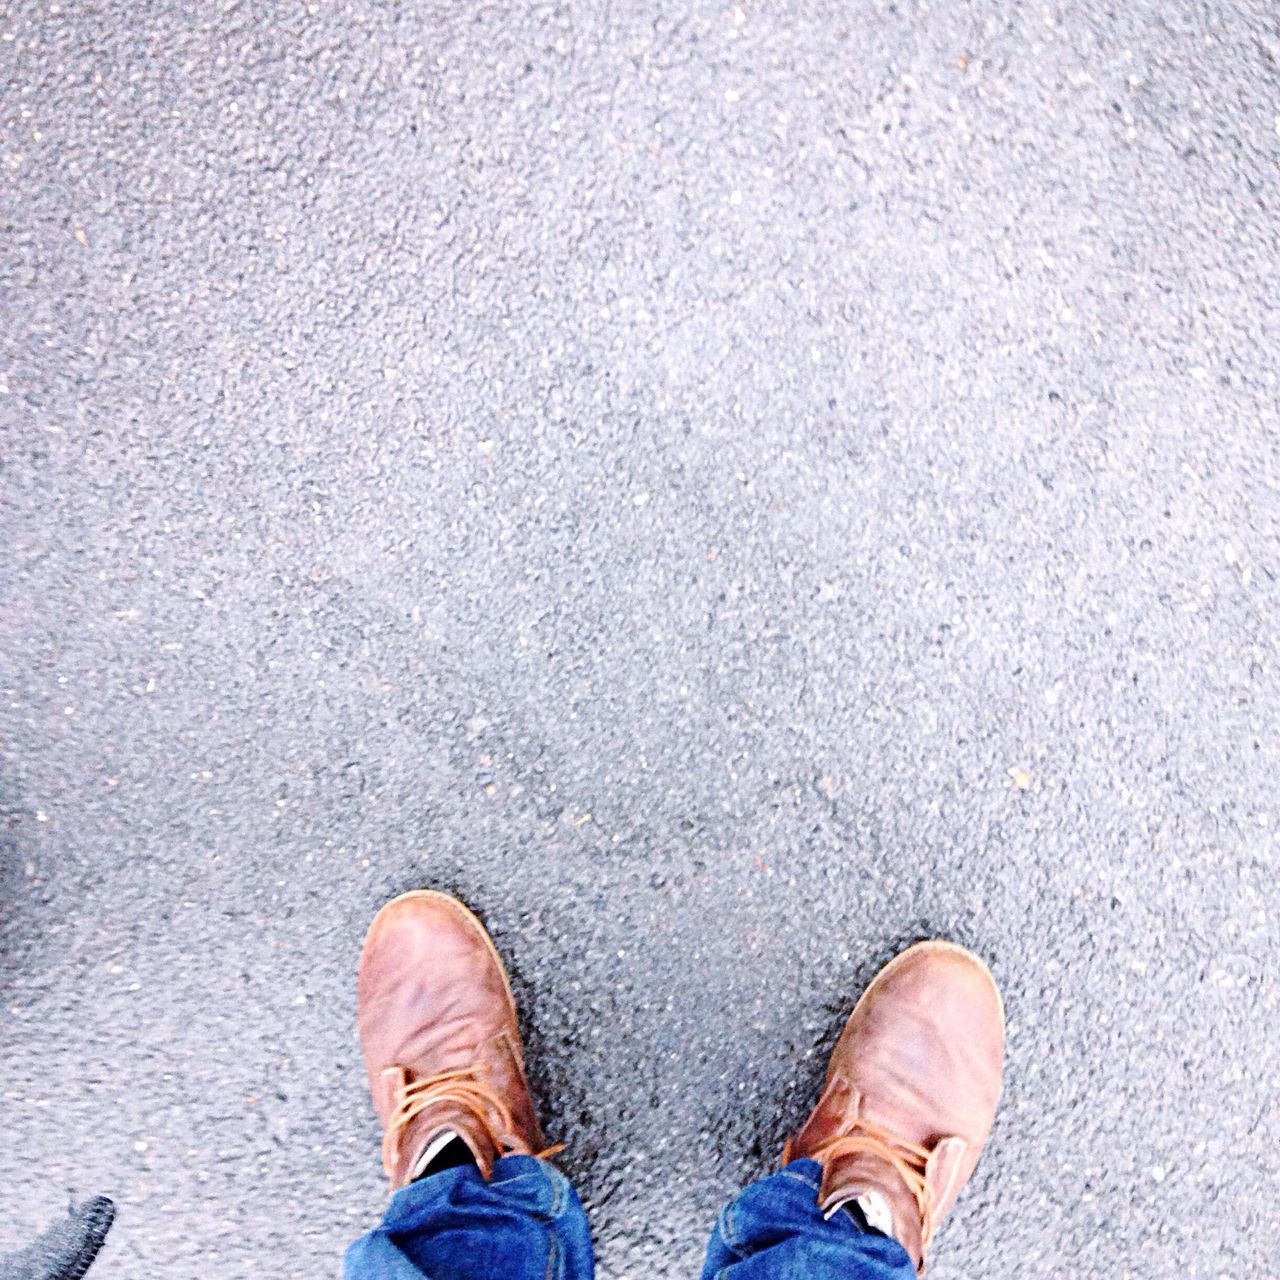 shoe, low section, human leg, standing, human body part, street, directly above, one person, high angle view, road, personal perspective, one man only, asphalt, men, outdoors, day, only men, lifestyles, puddle, real people, people, adult, nature, adults only, close-up